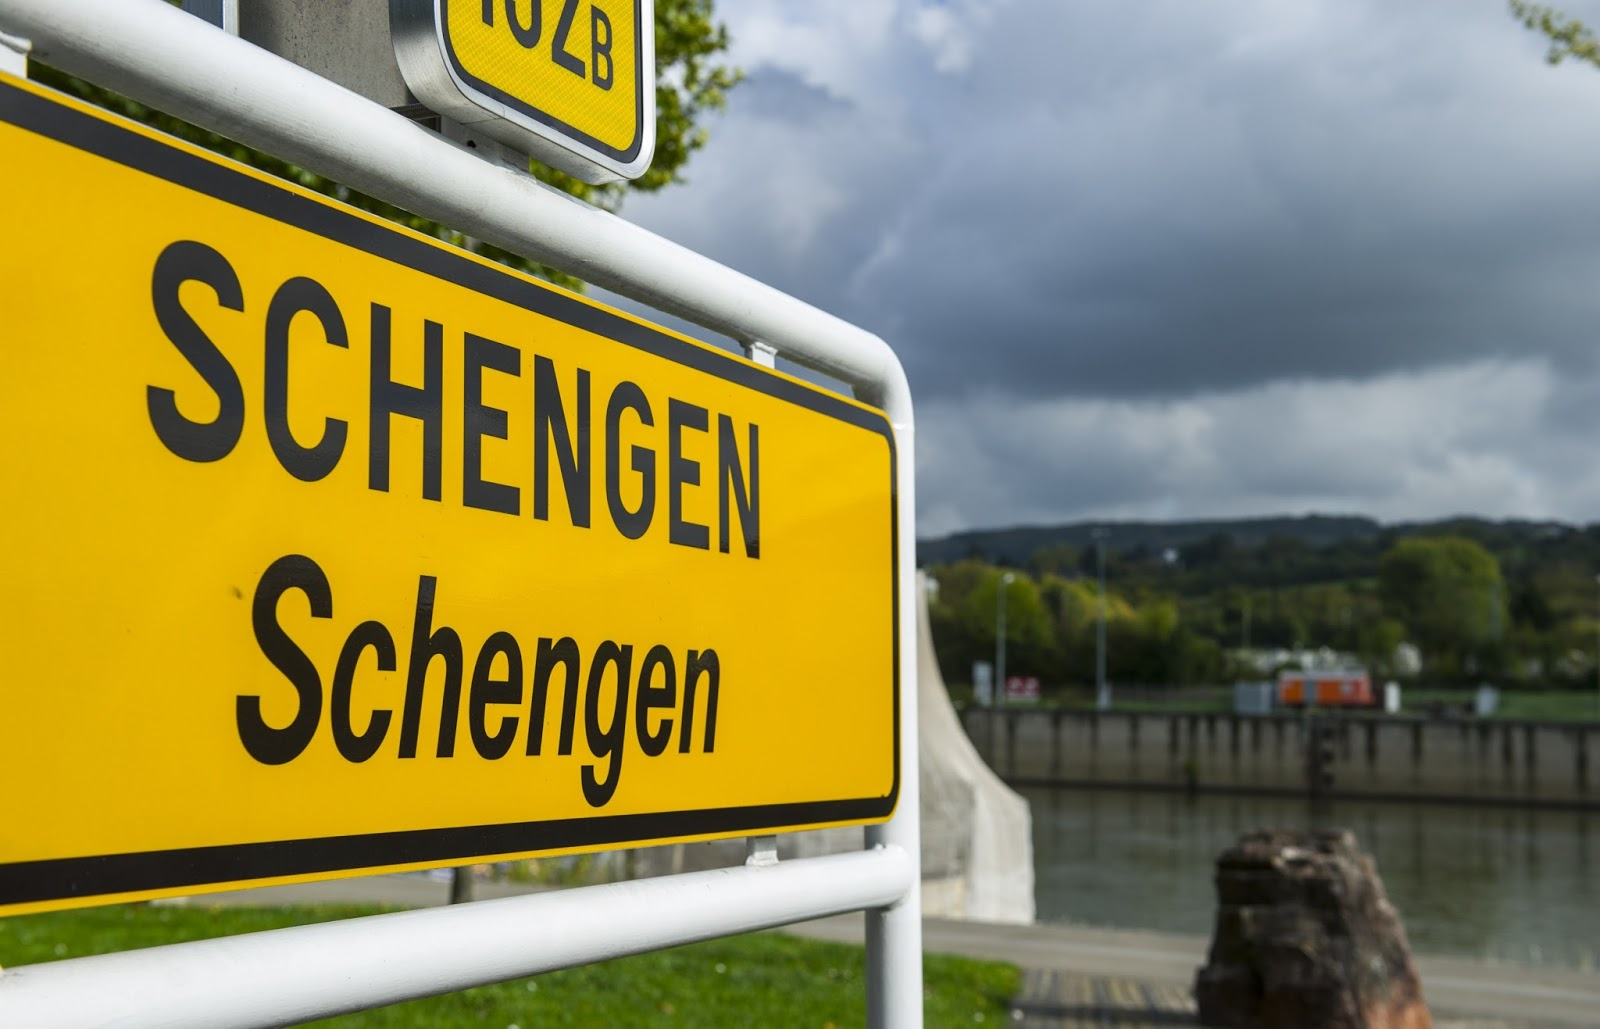 Don't mess with your Schengen Visa Application